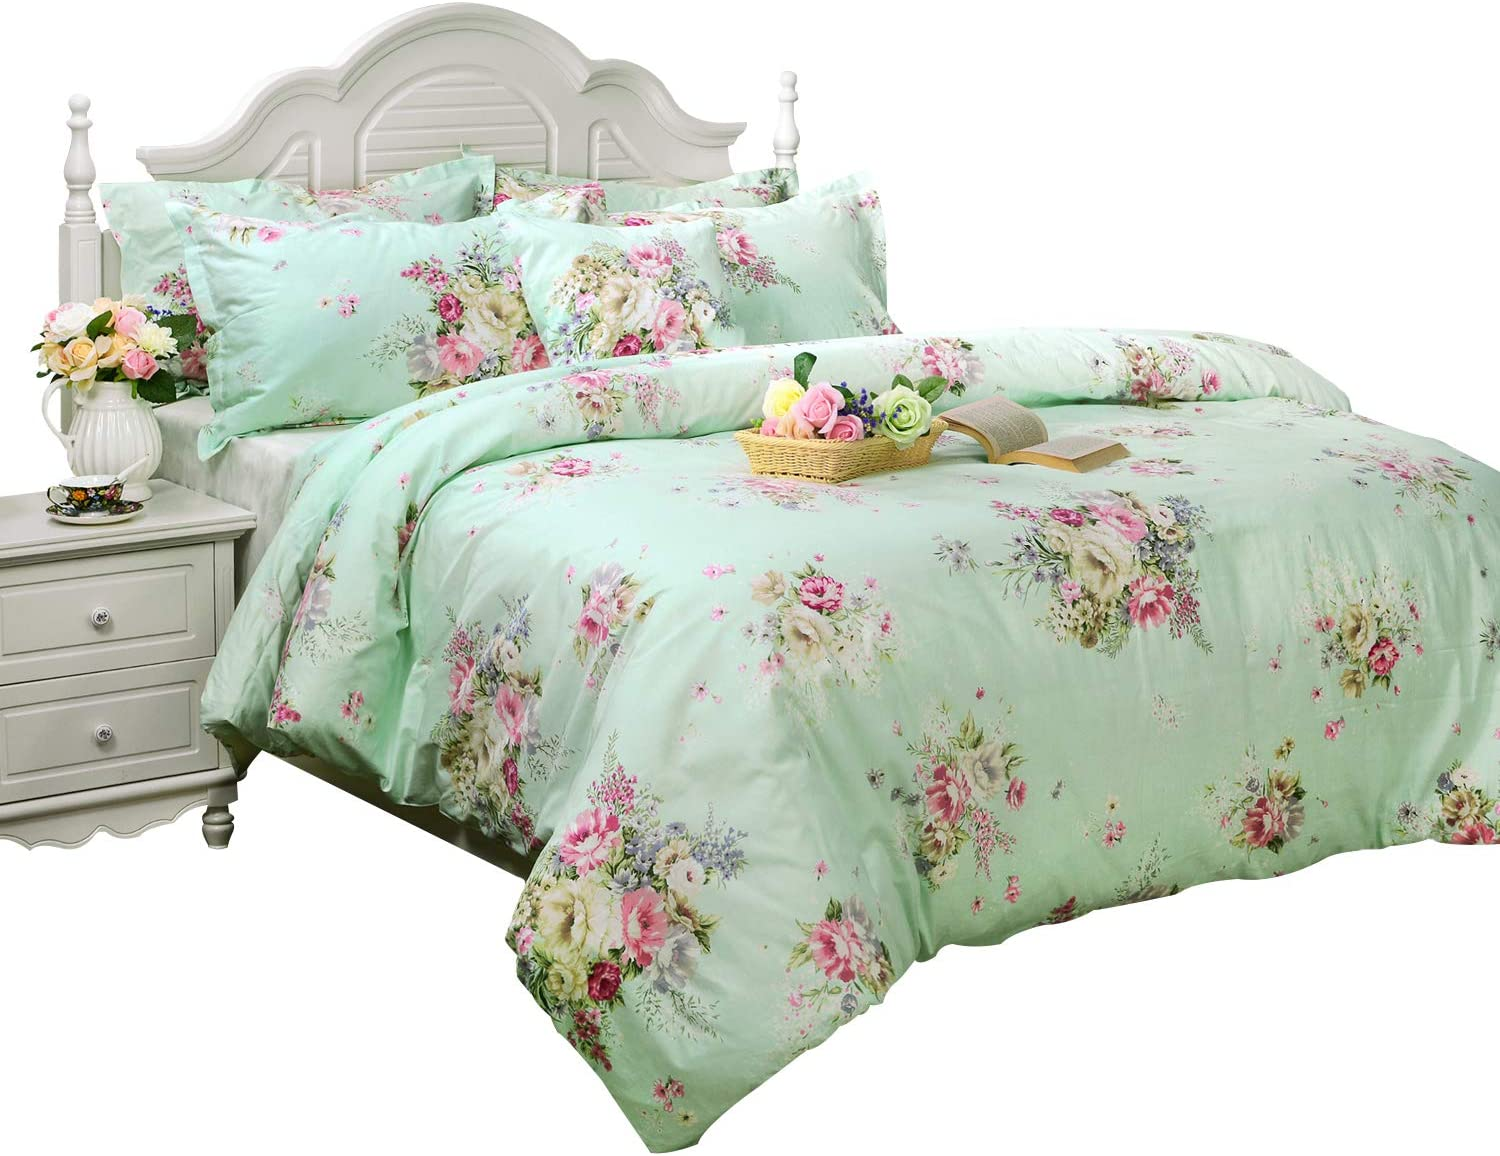 FADFAY Green Floral Duvet Cover Sets Vintage Flower Printed Bedding Hypoallergenic 100% Cotton Twin Extra Long Designer Bedding Set 3 Pieces, 1duvet Cover & 2pillowcases (Twin XL Size, Simple Style)